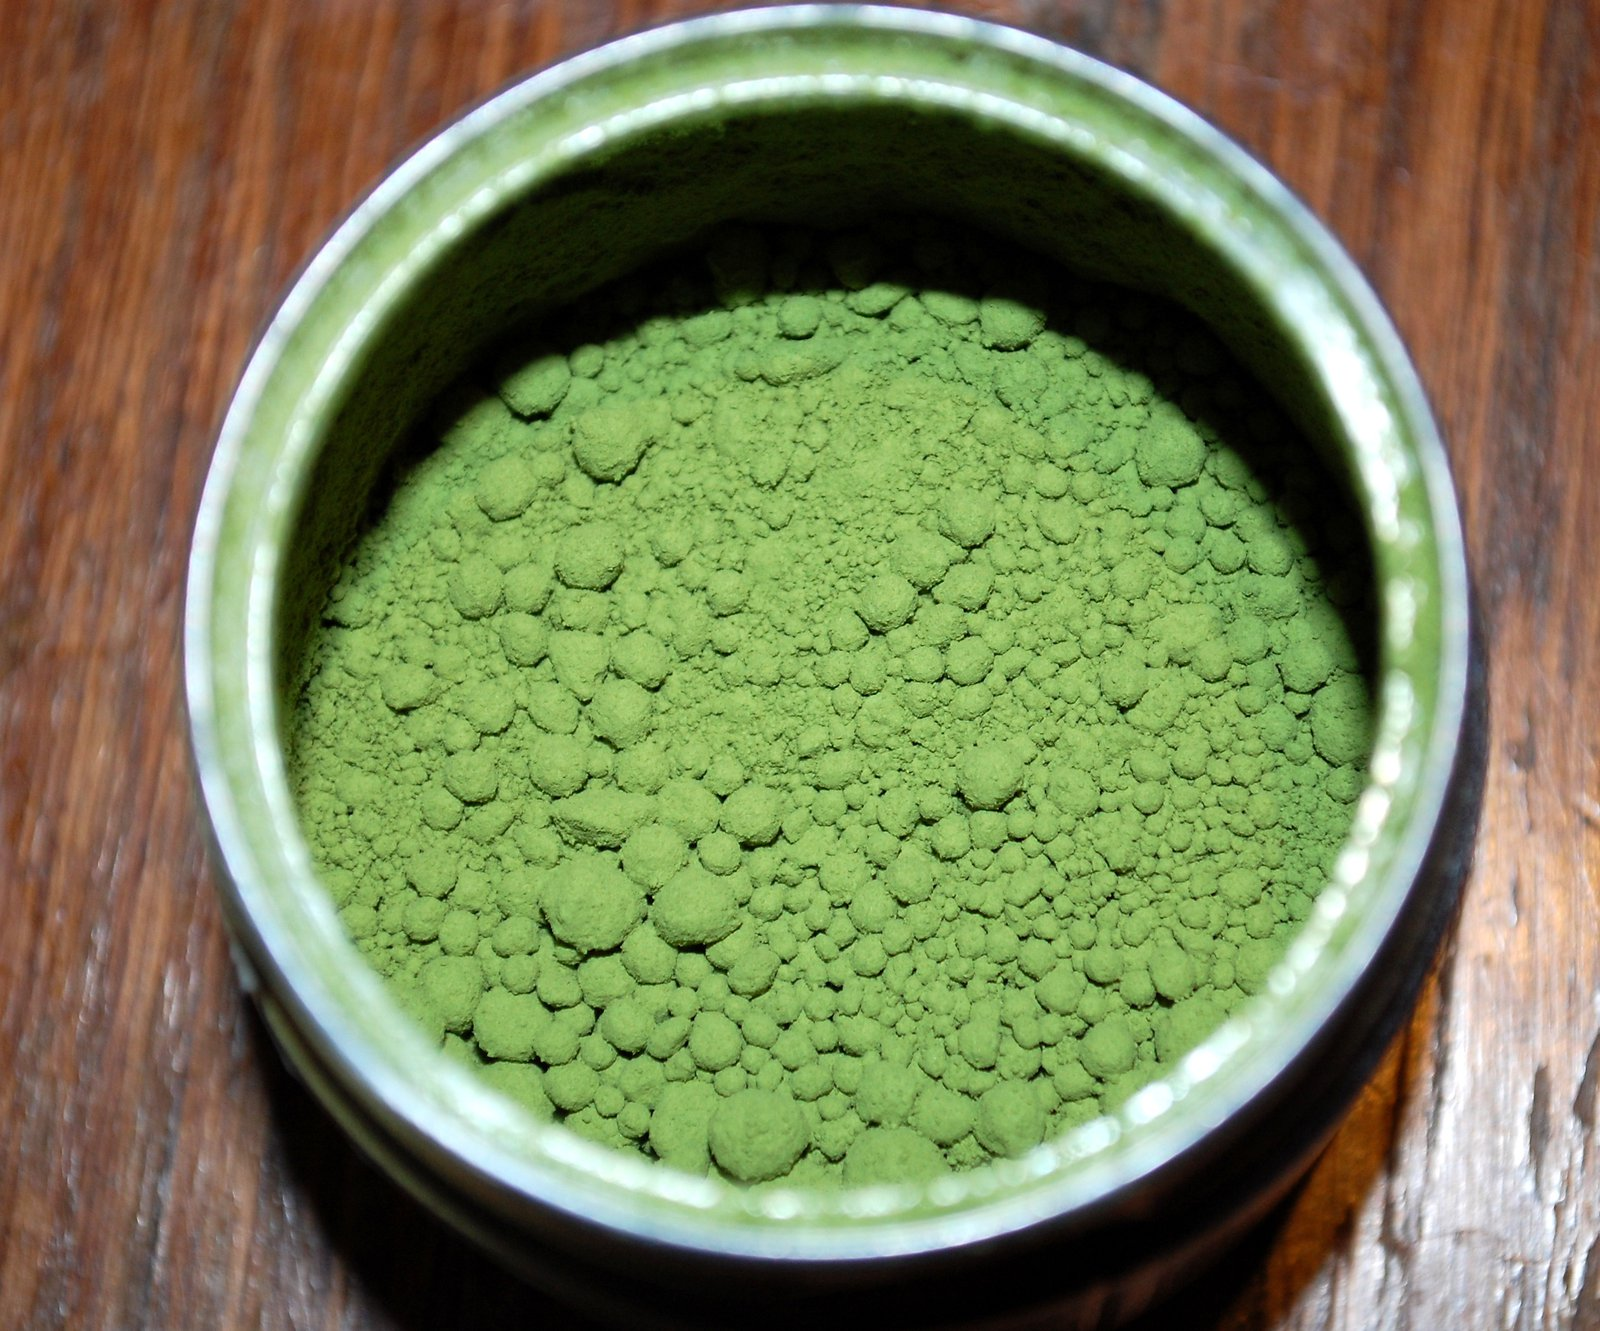 Matcha Tea Looking Like Green Paint